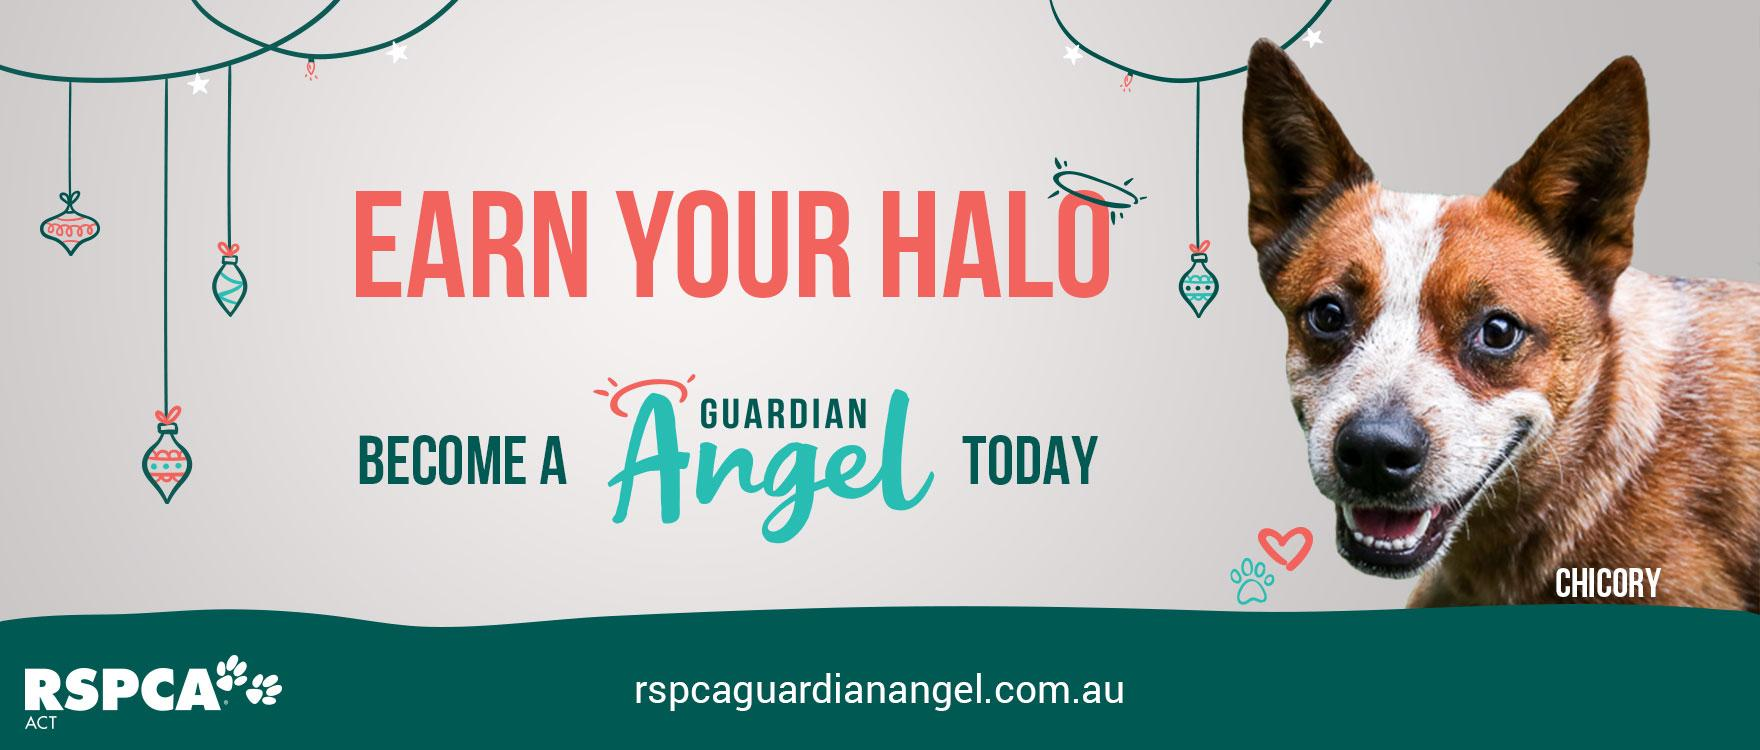 Earn your halo by becoming a Guardian Angel for an animal in our care